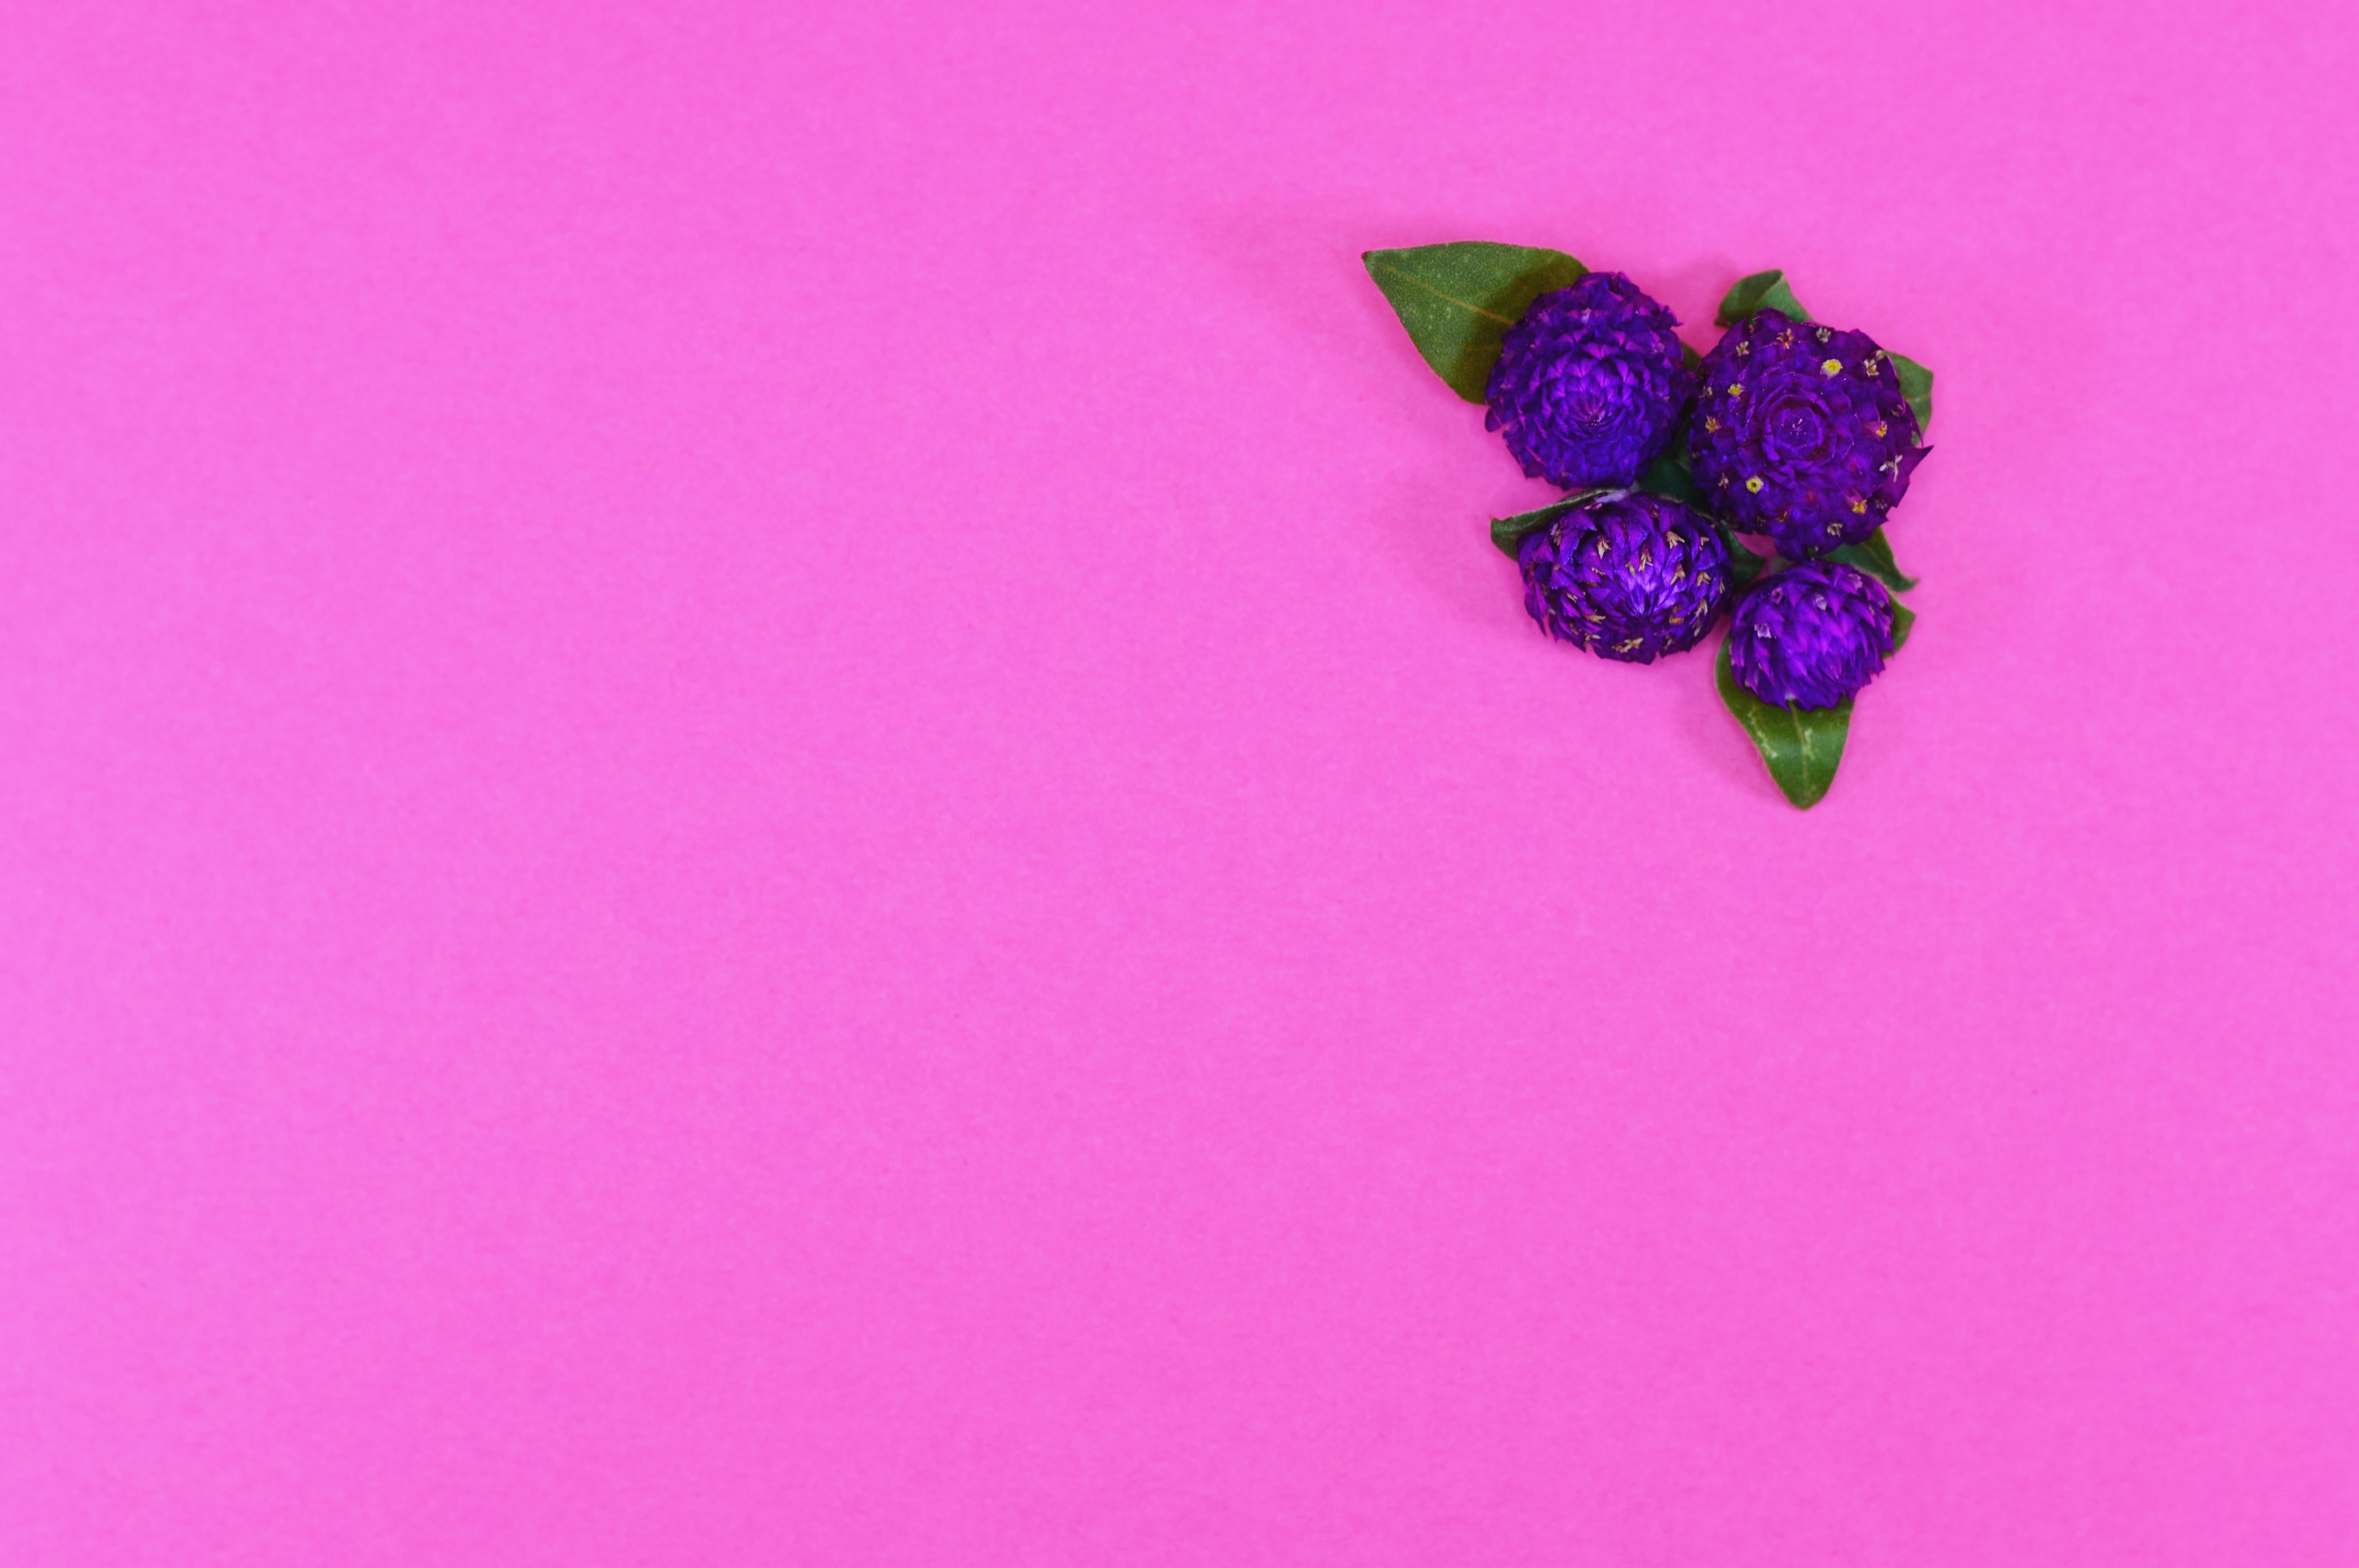 Free stock photo of nature, purple, texture, colorful